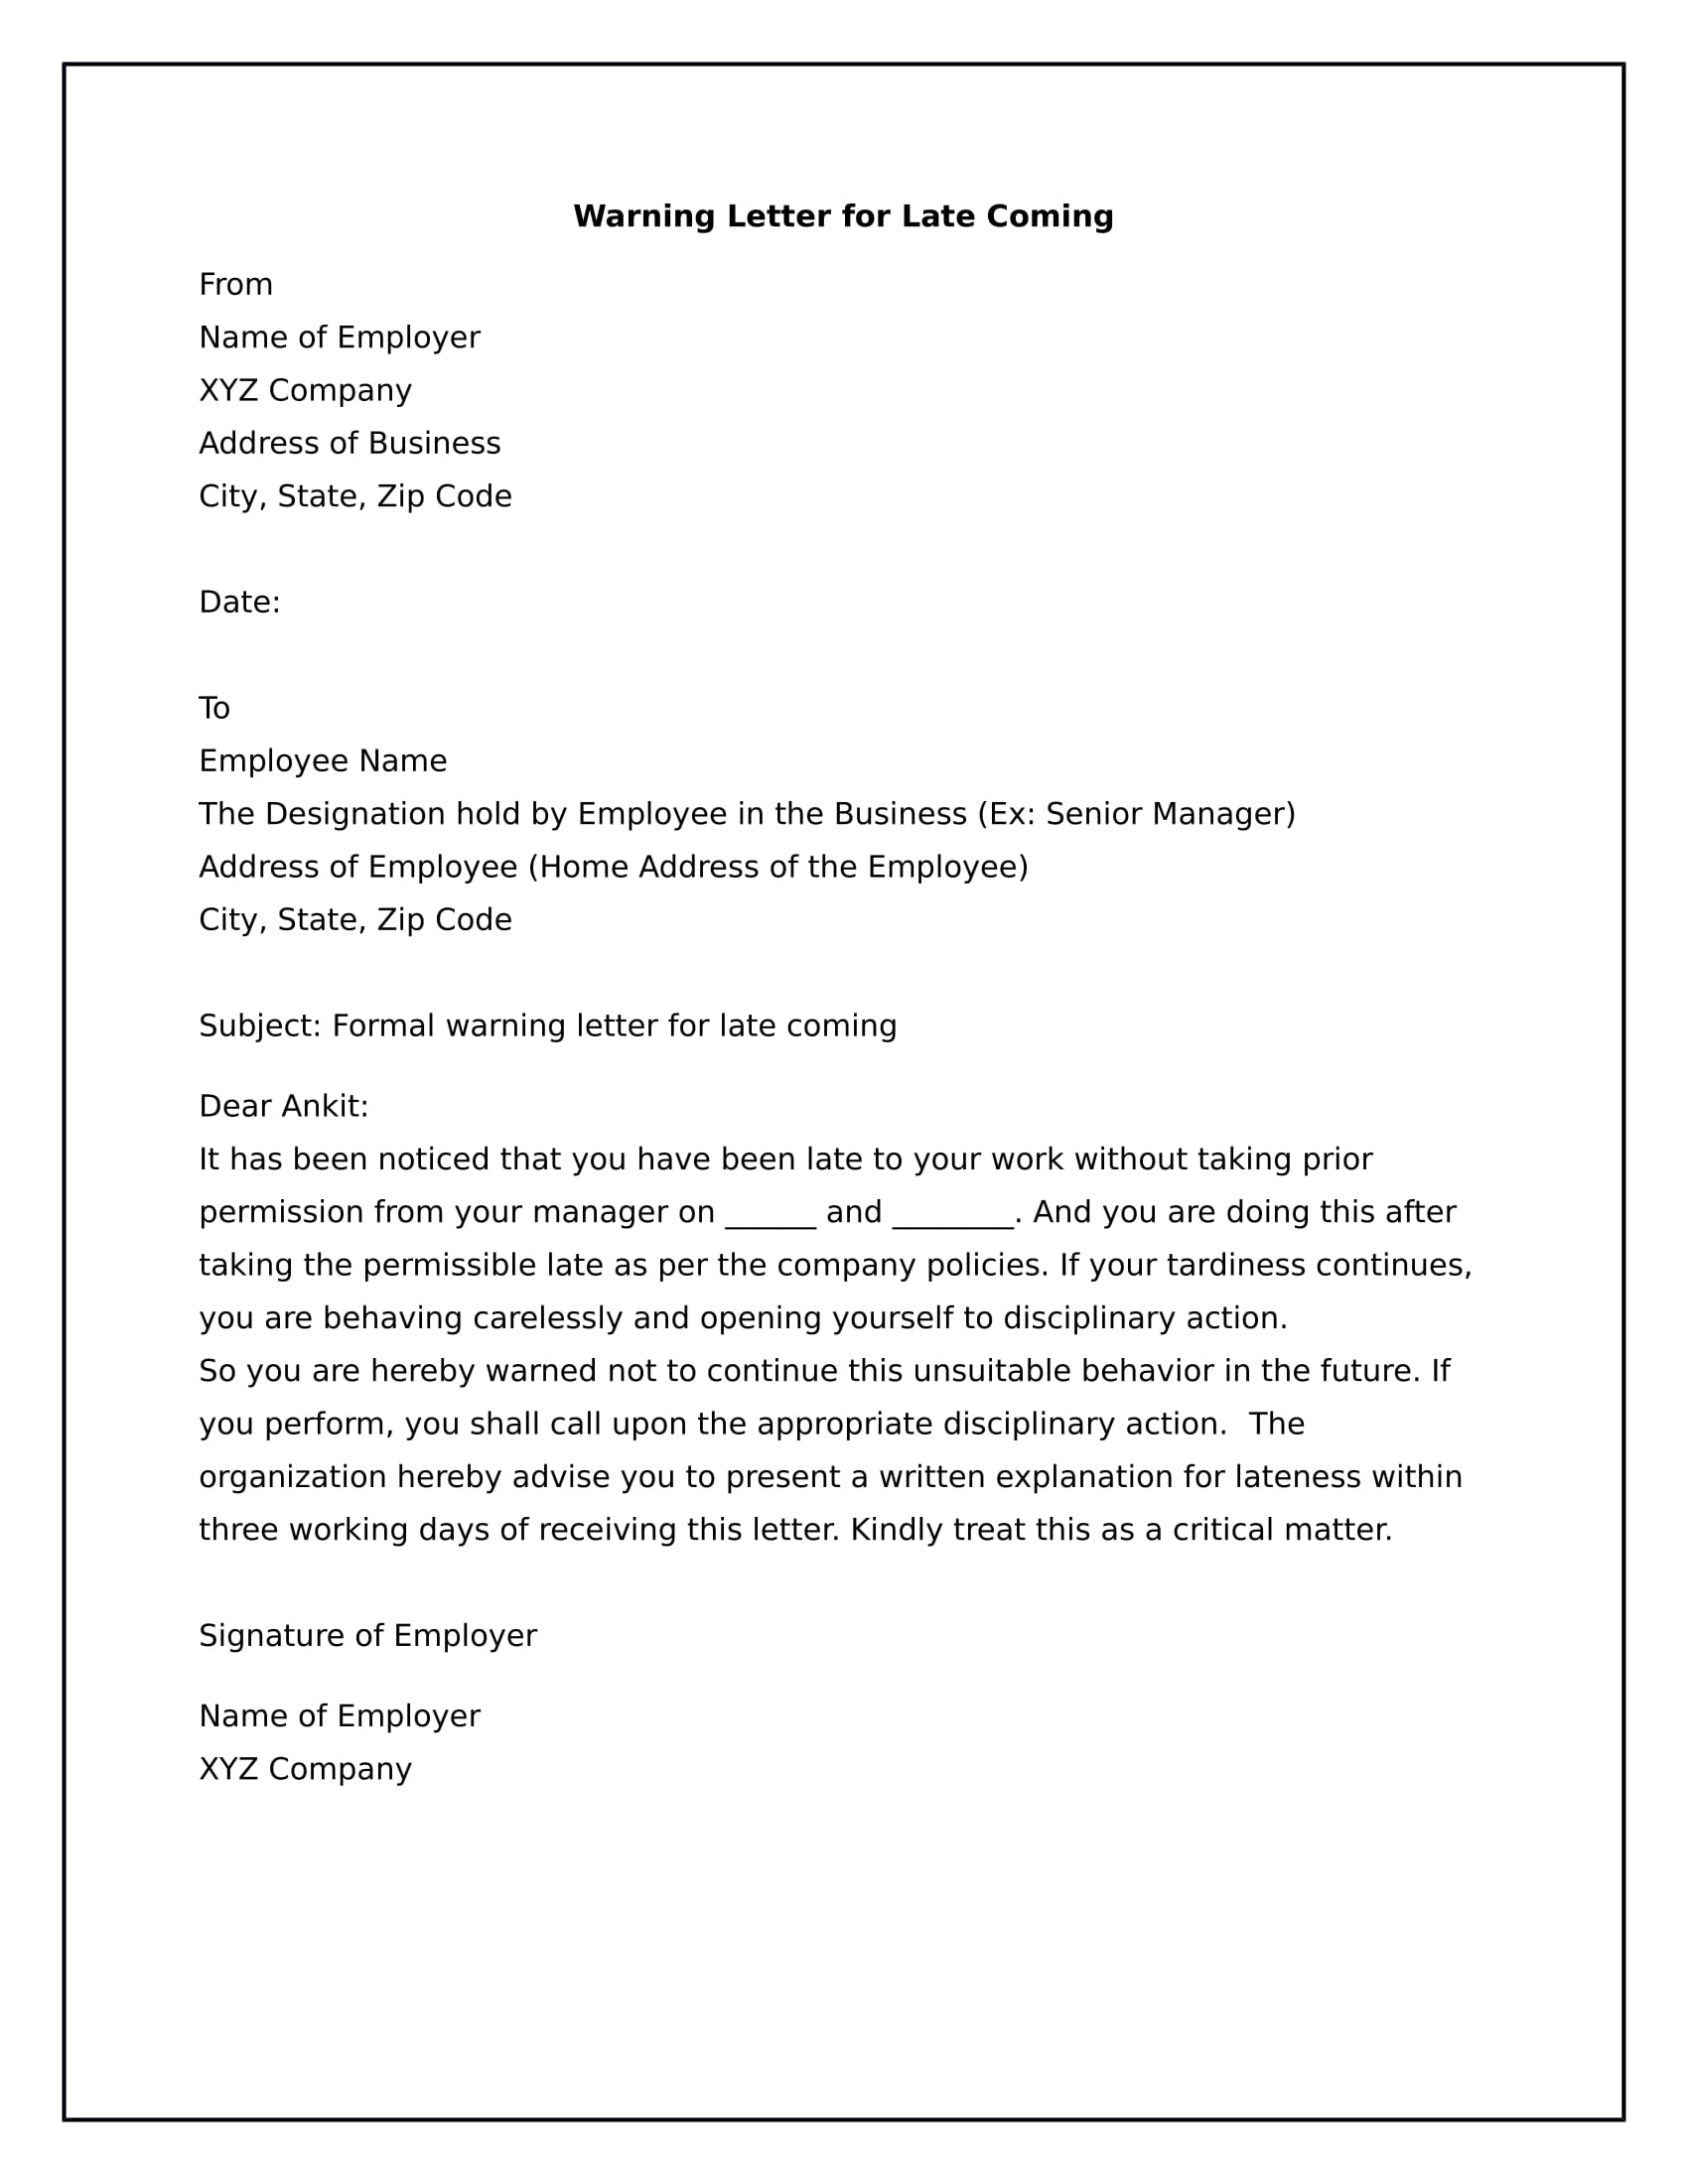 How To Write Warning Letter For Late Coming Wisdomjobs Com